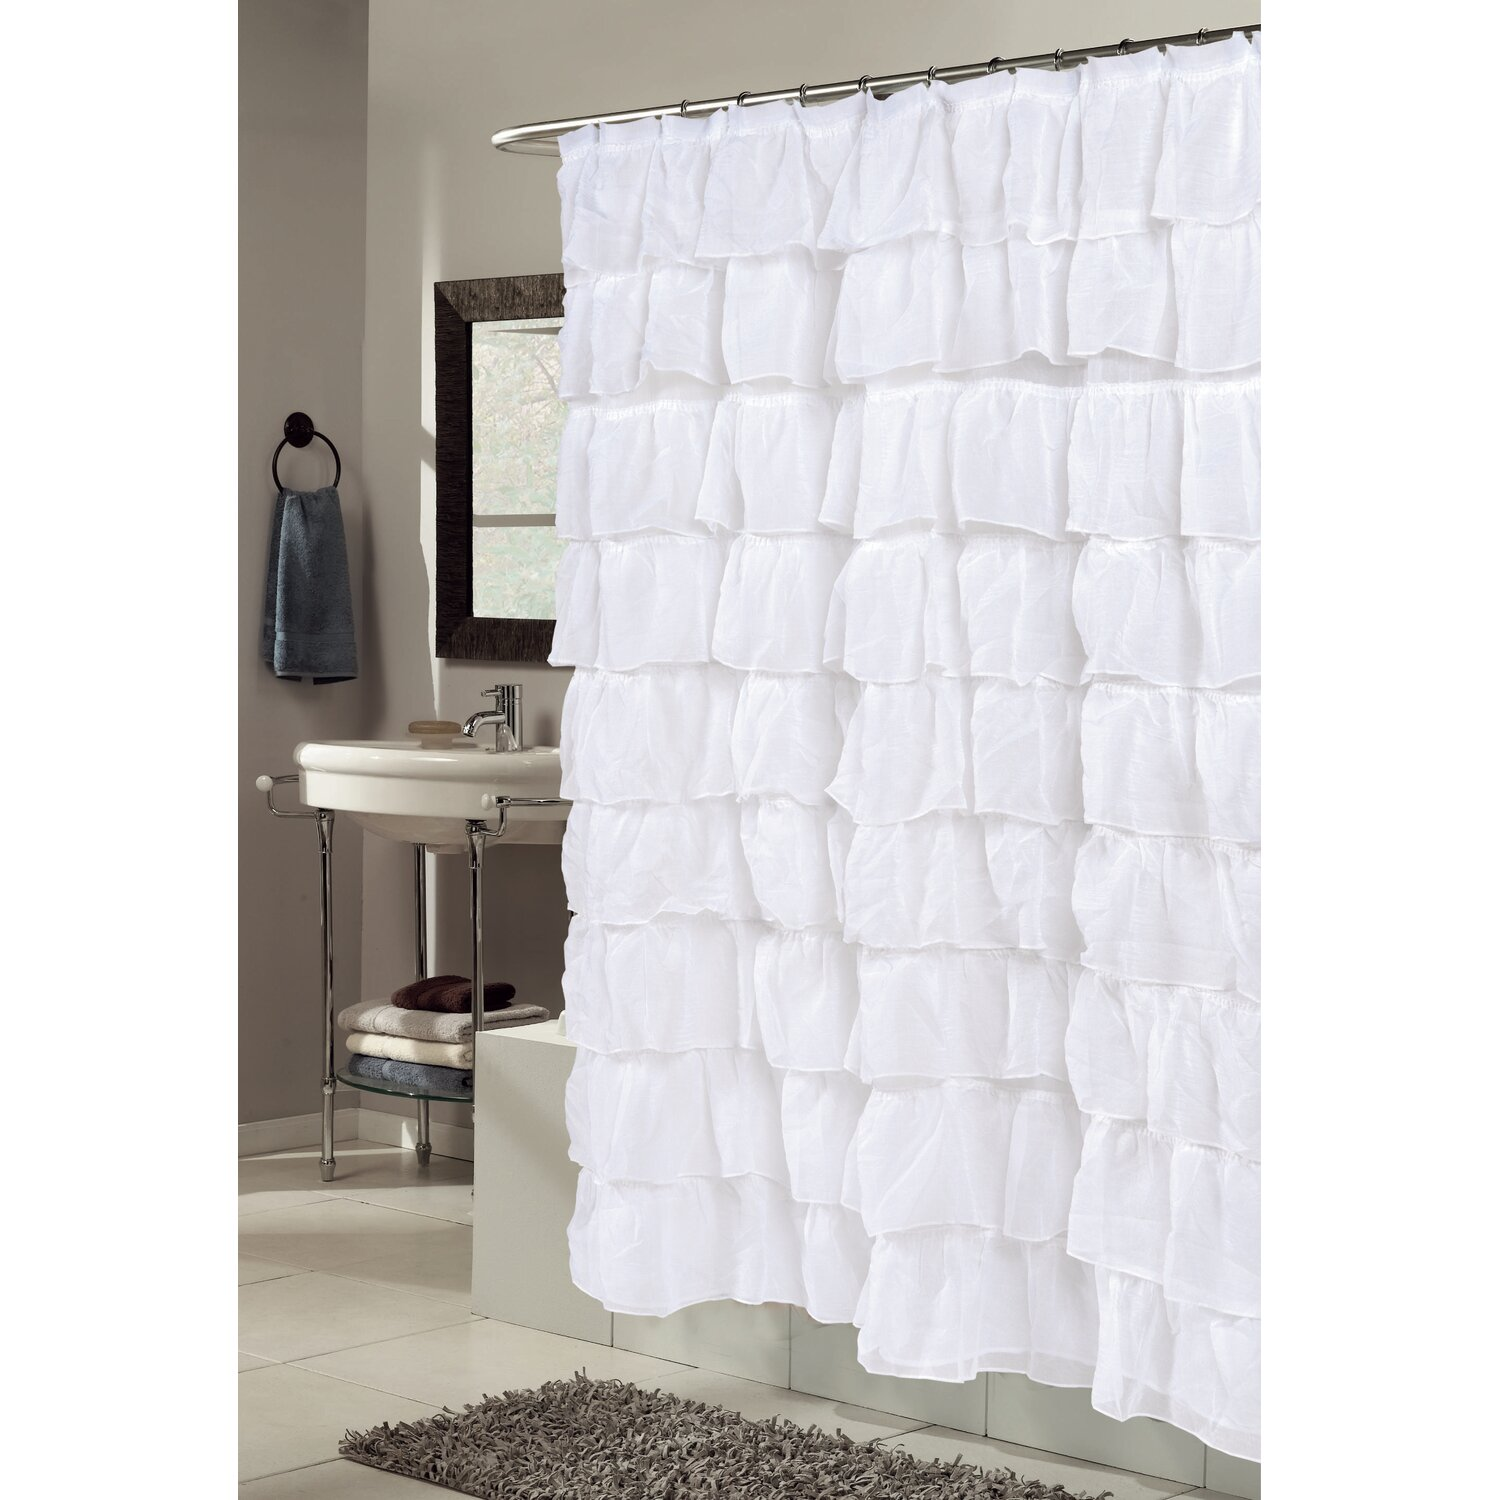 Carnation Home Fashions Fabric Shower Curtain Carnation Home Fashions Carmen